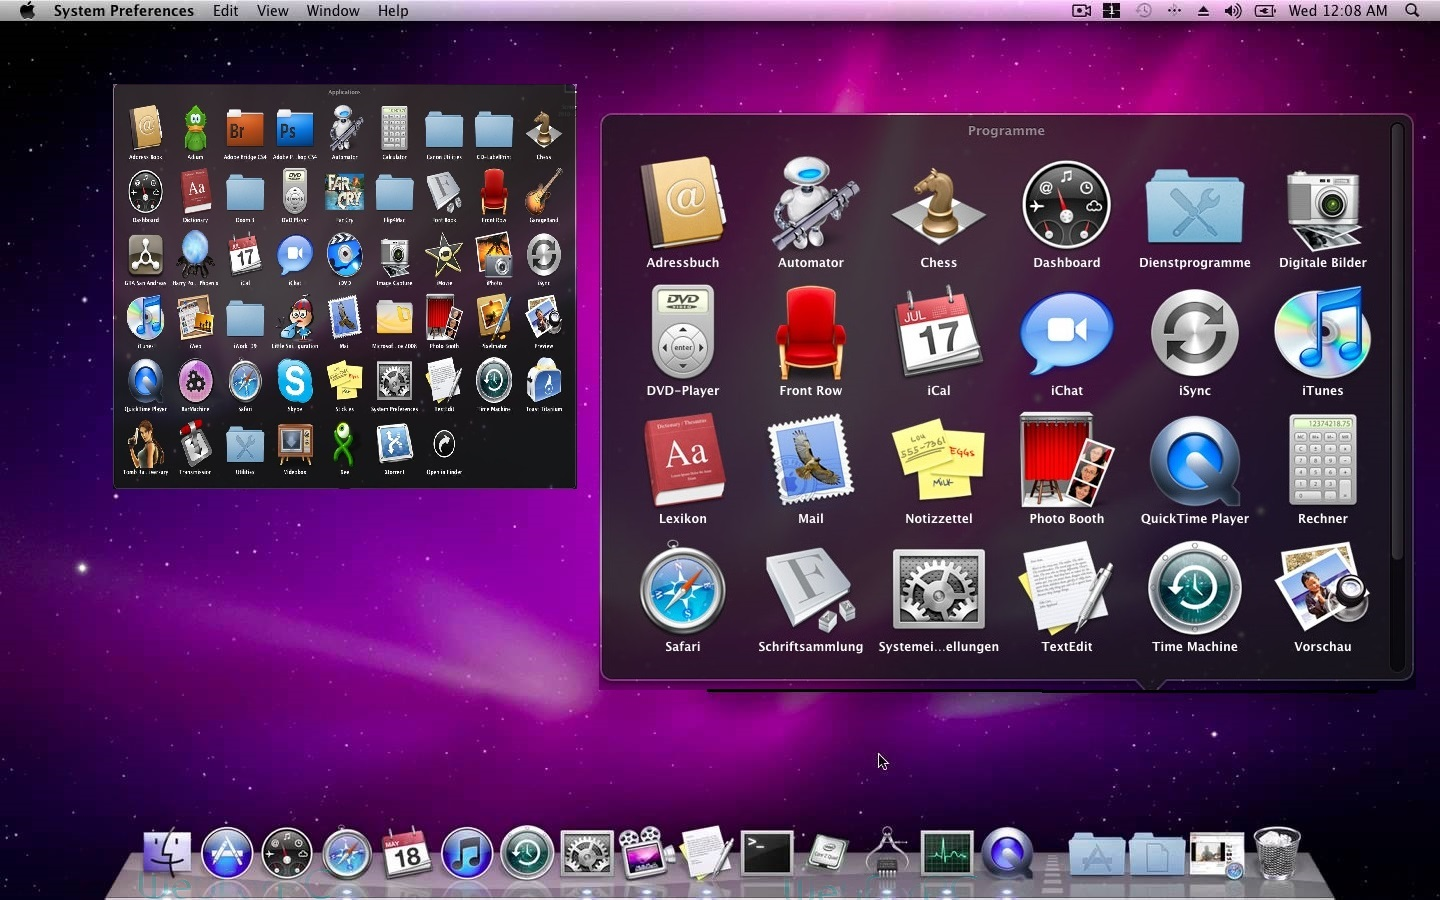 how to get macm os 10.13.4 for free